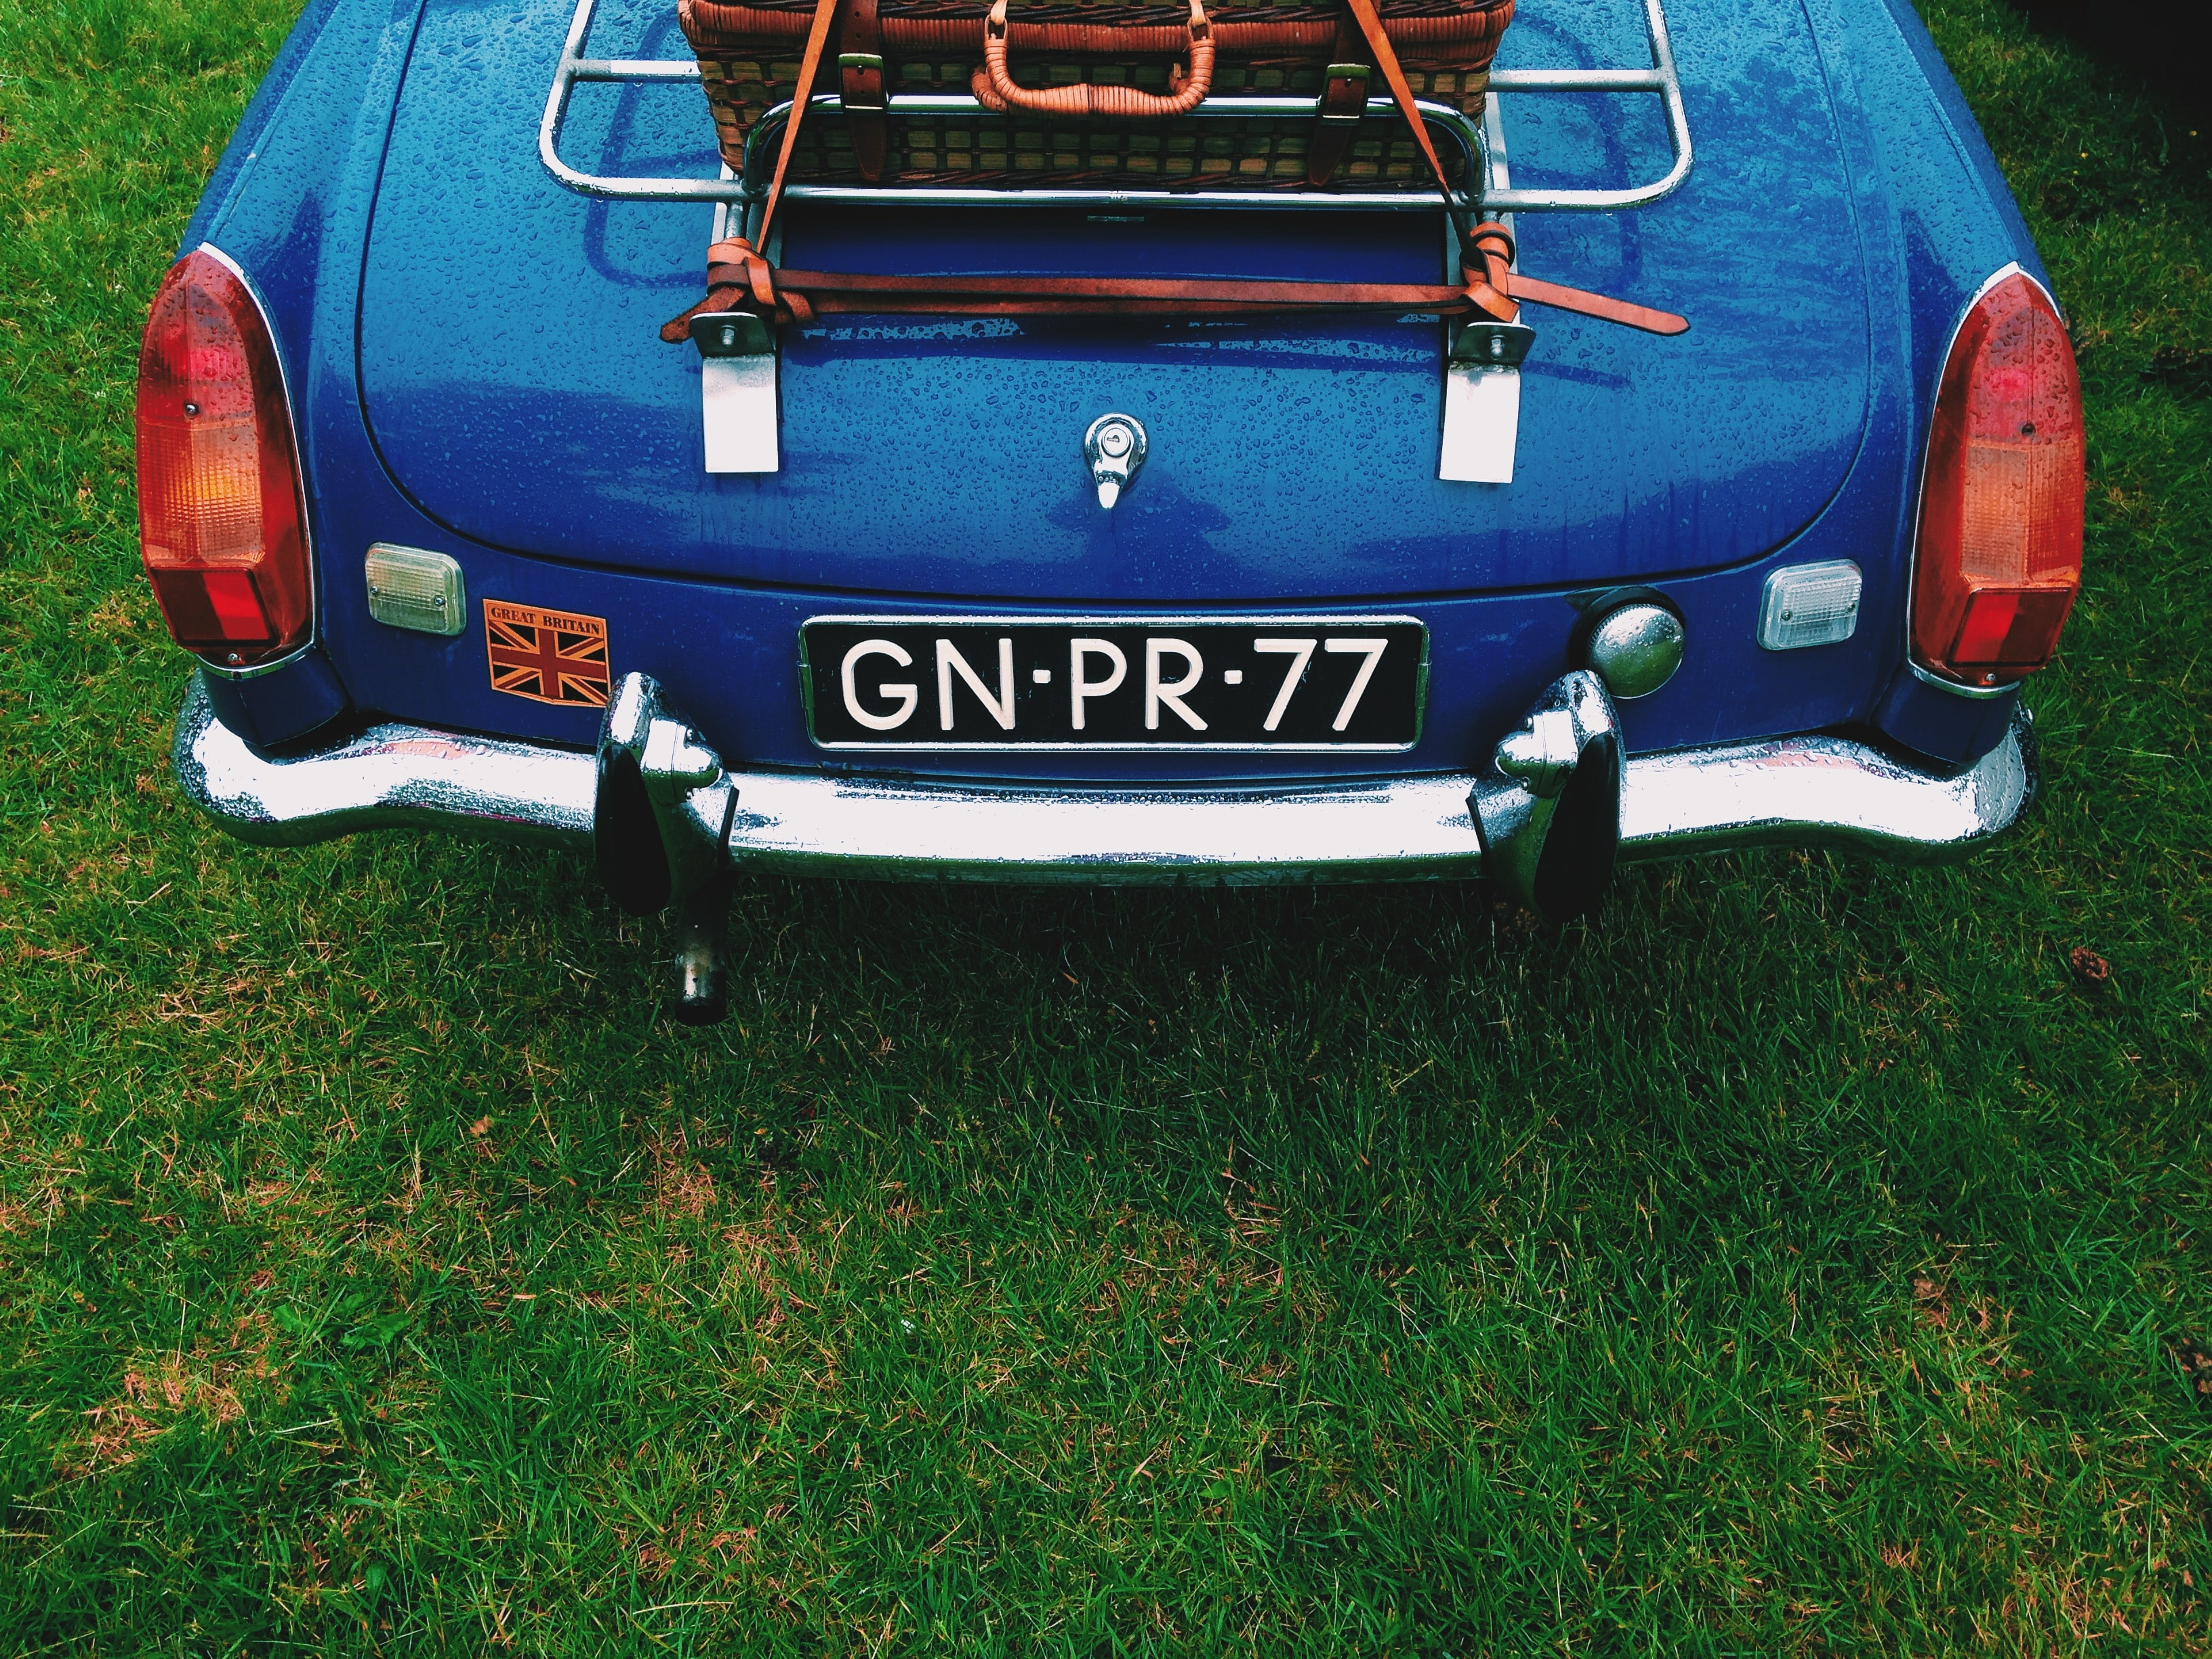 Rear view of a blue vintage car with luggage on top of the trunk